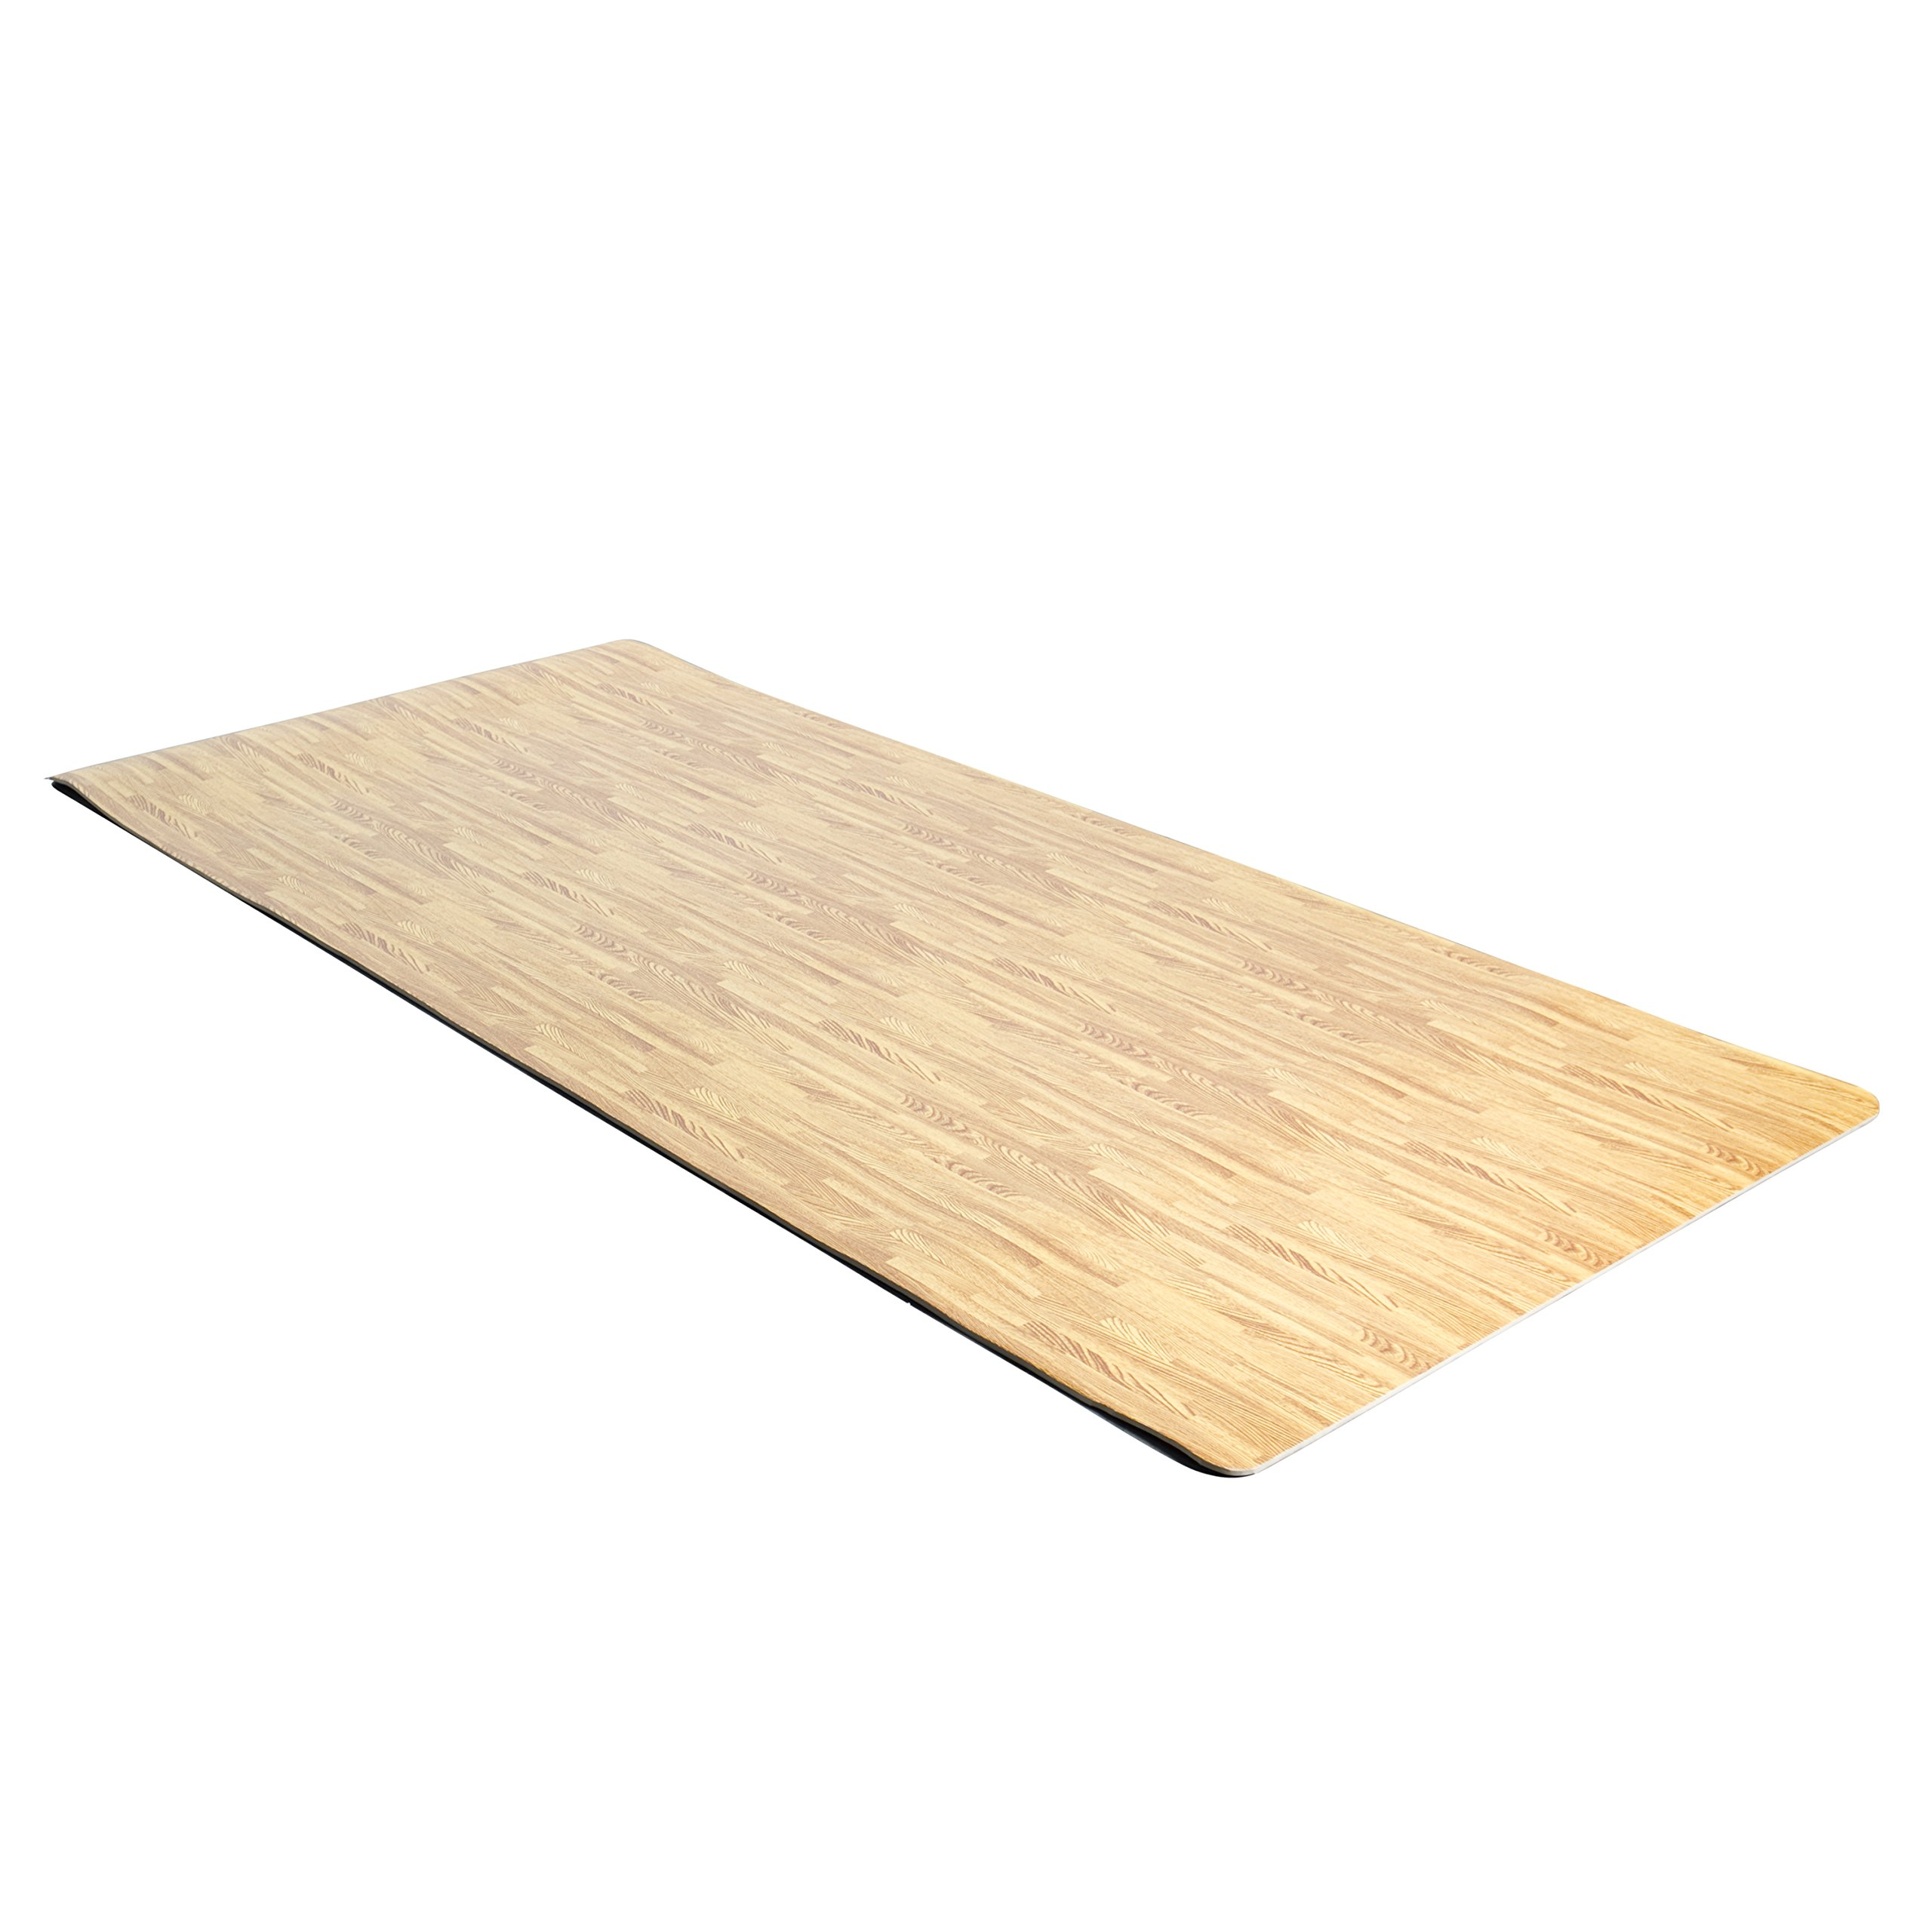 Cap barbell roll up antimicrobial eva foam mat wood style